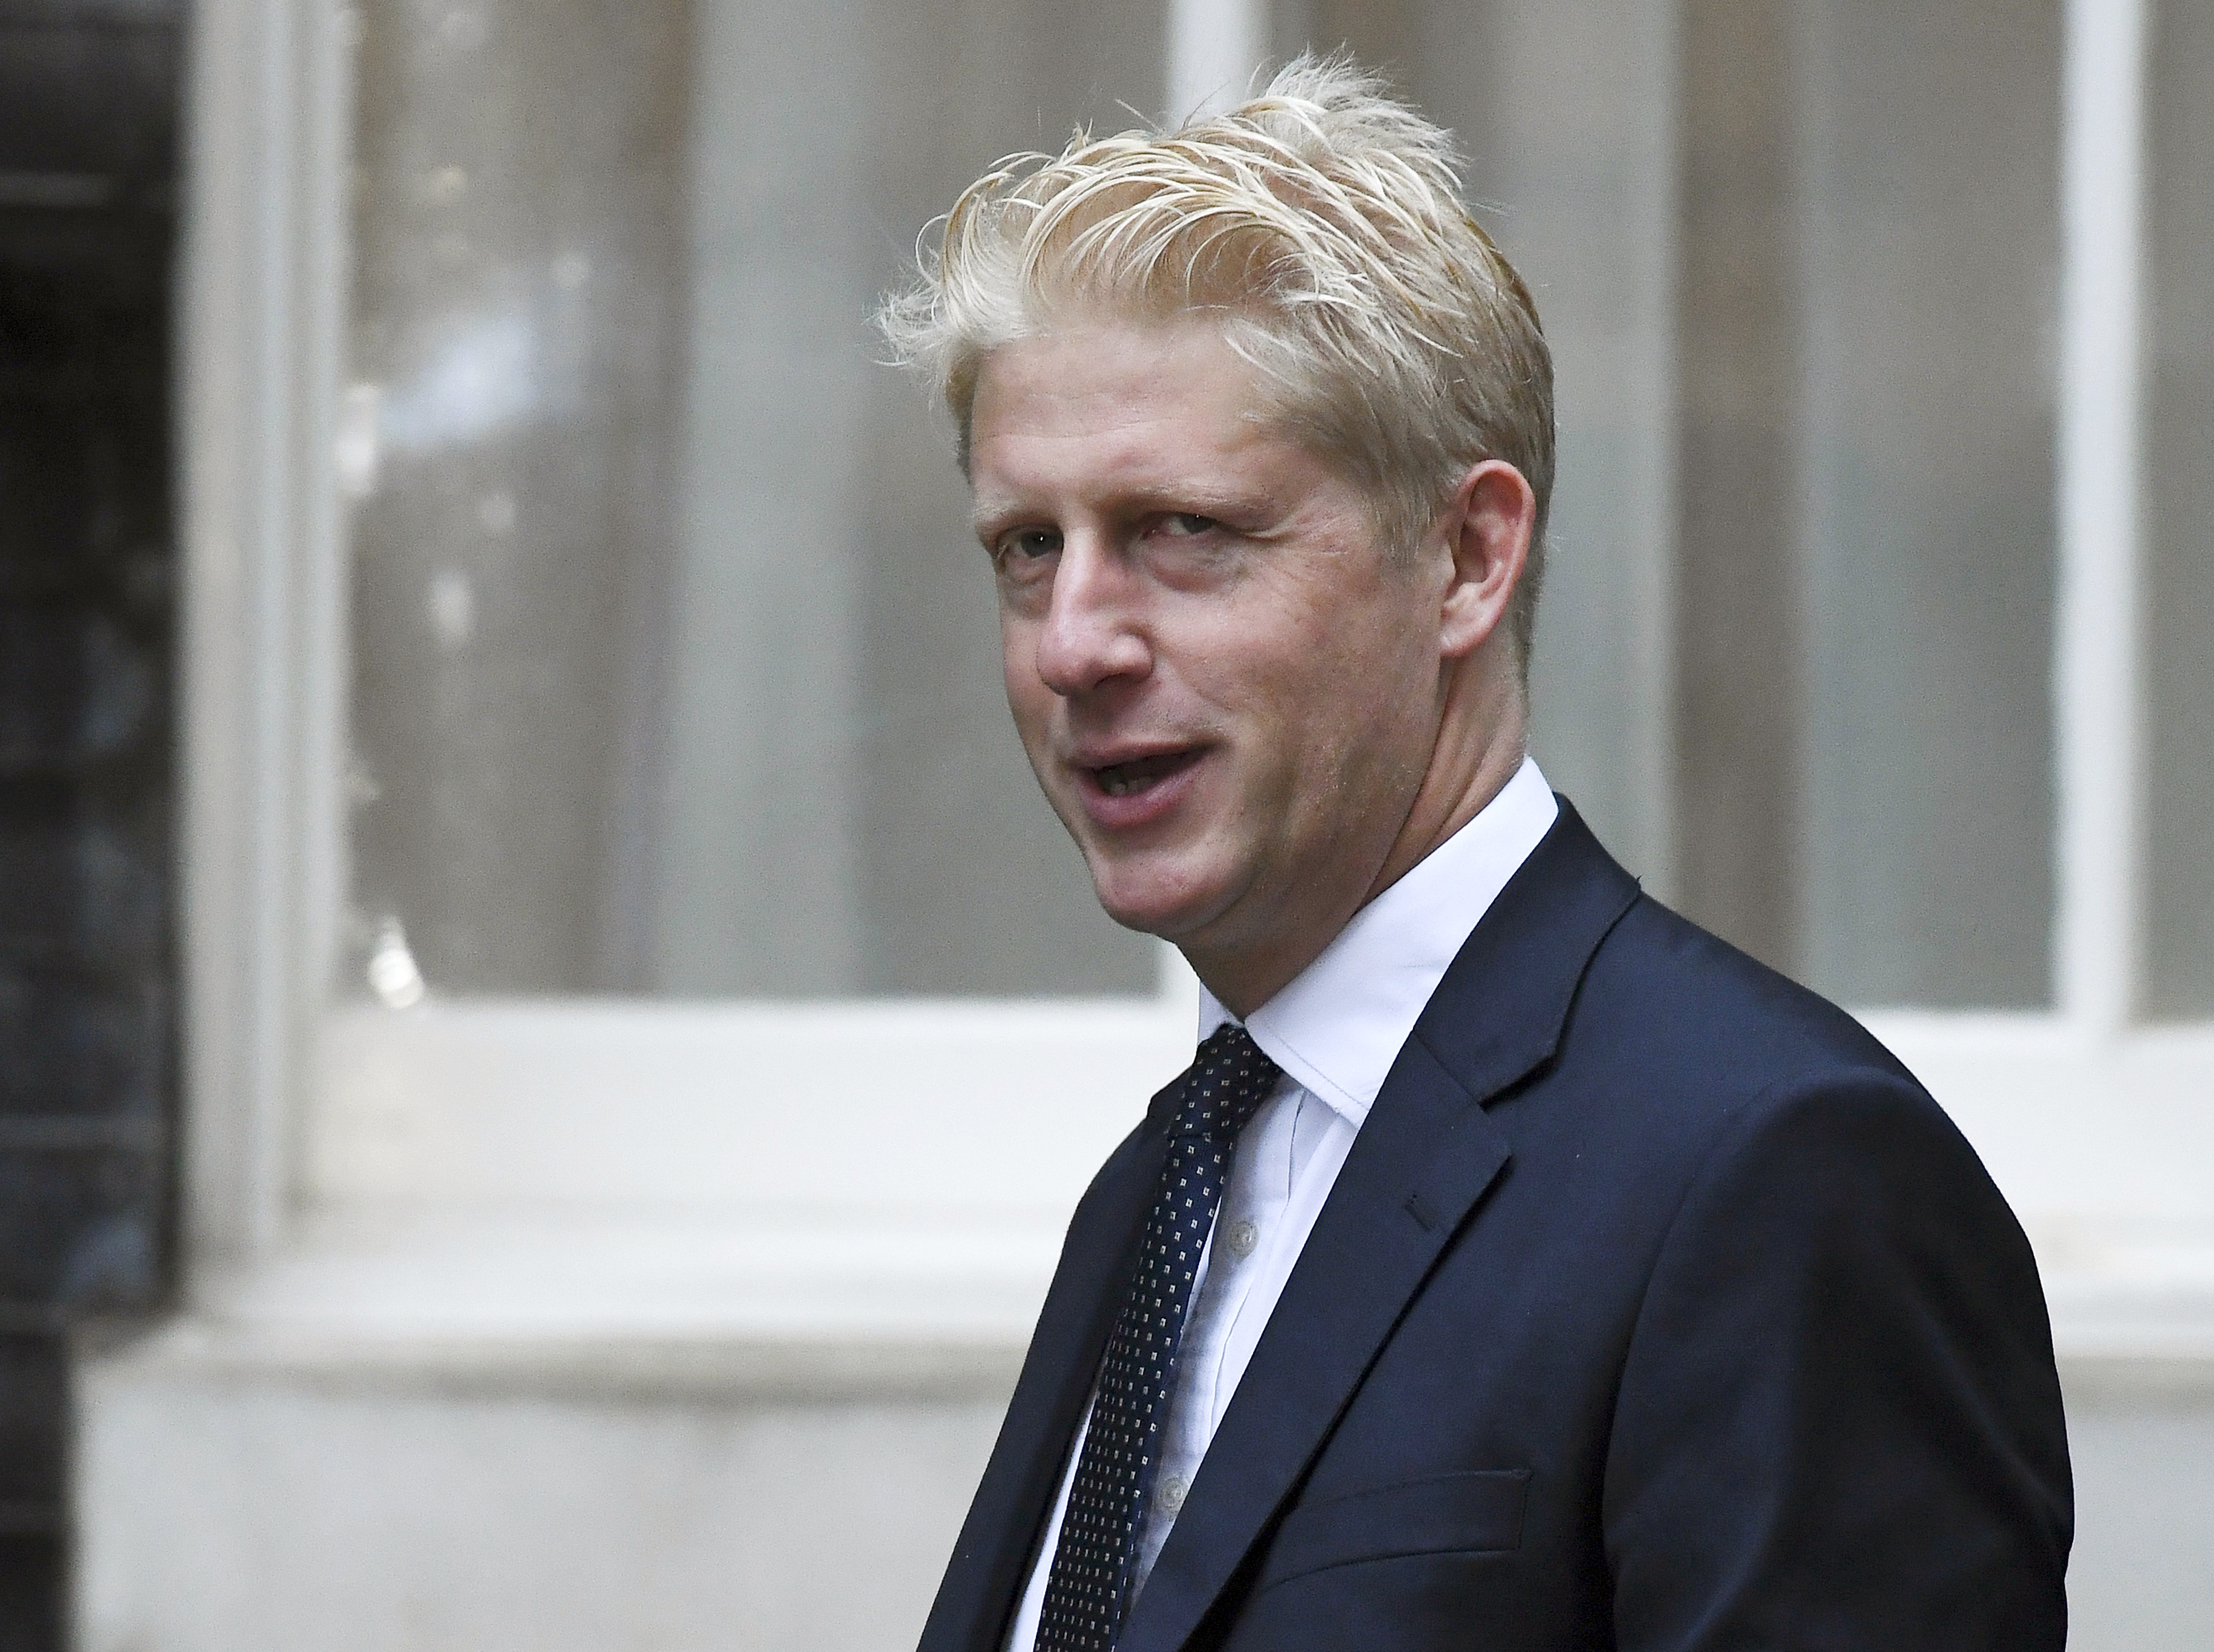 This time its Boris Johnsons younger brother jumping ship